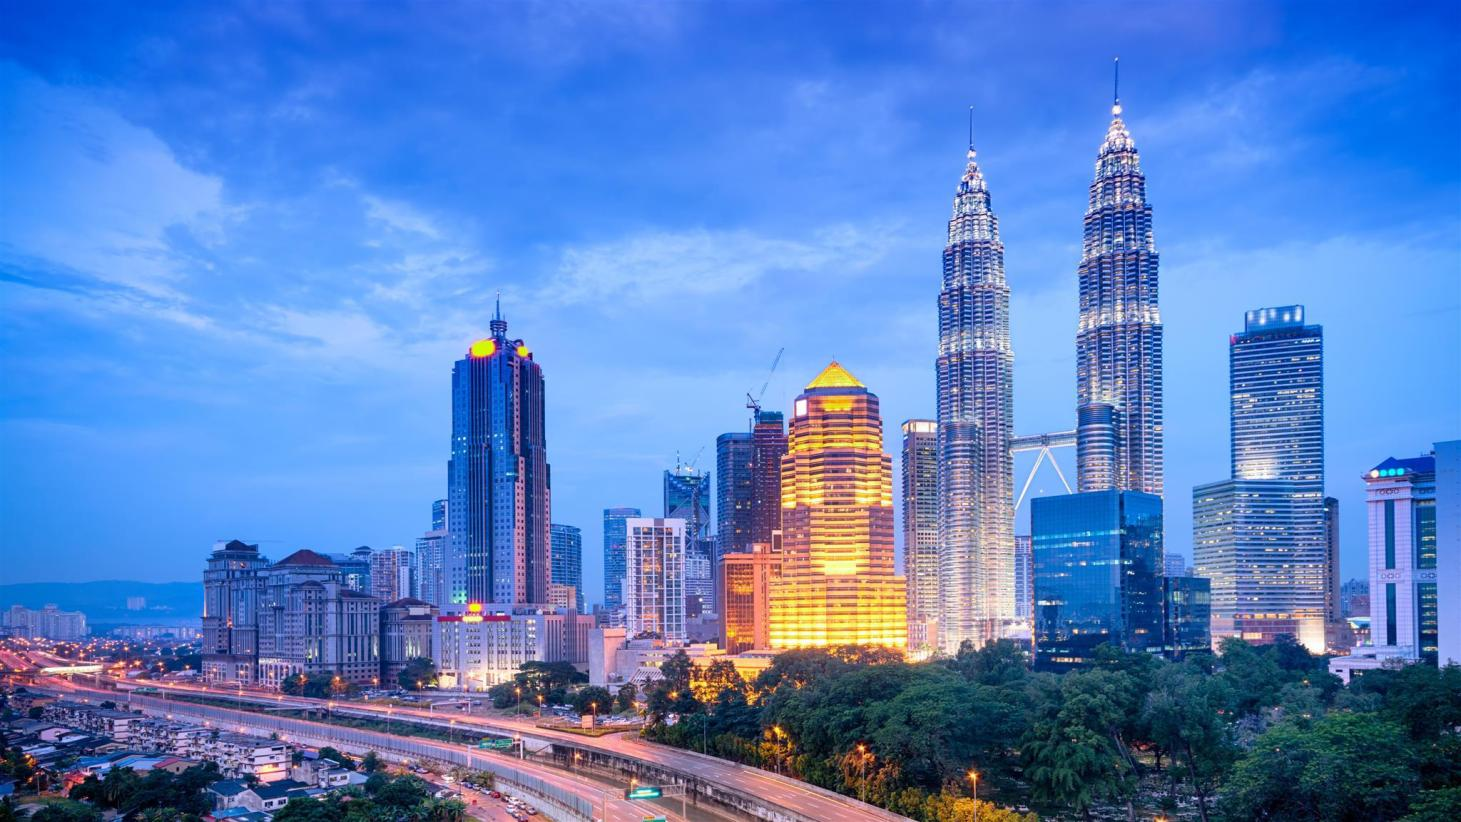 10 Best Kuala Lumpur Hotels: HD Photos + Reviews of Hotels in ...